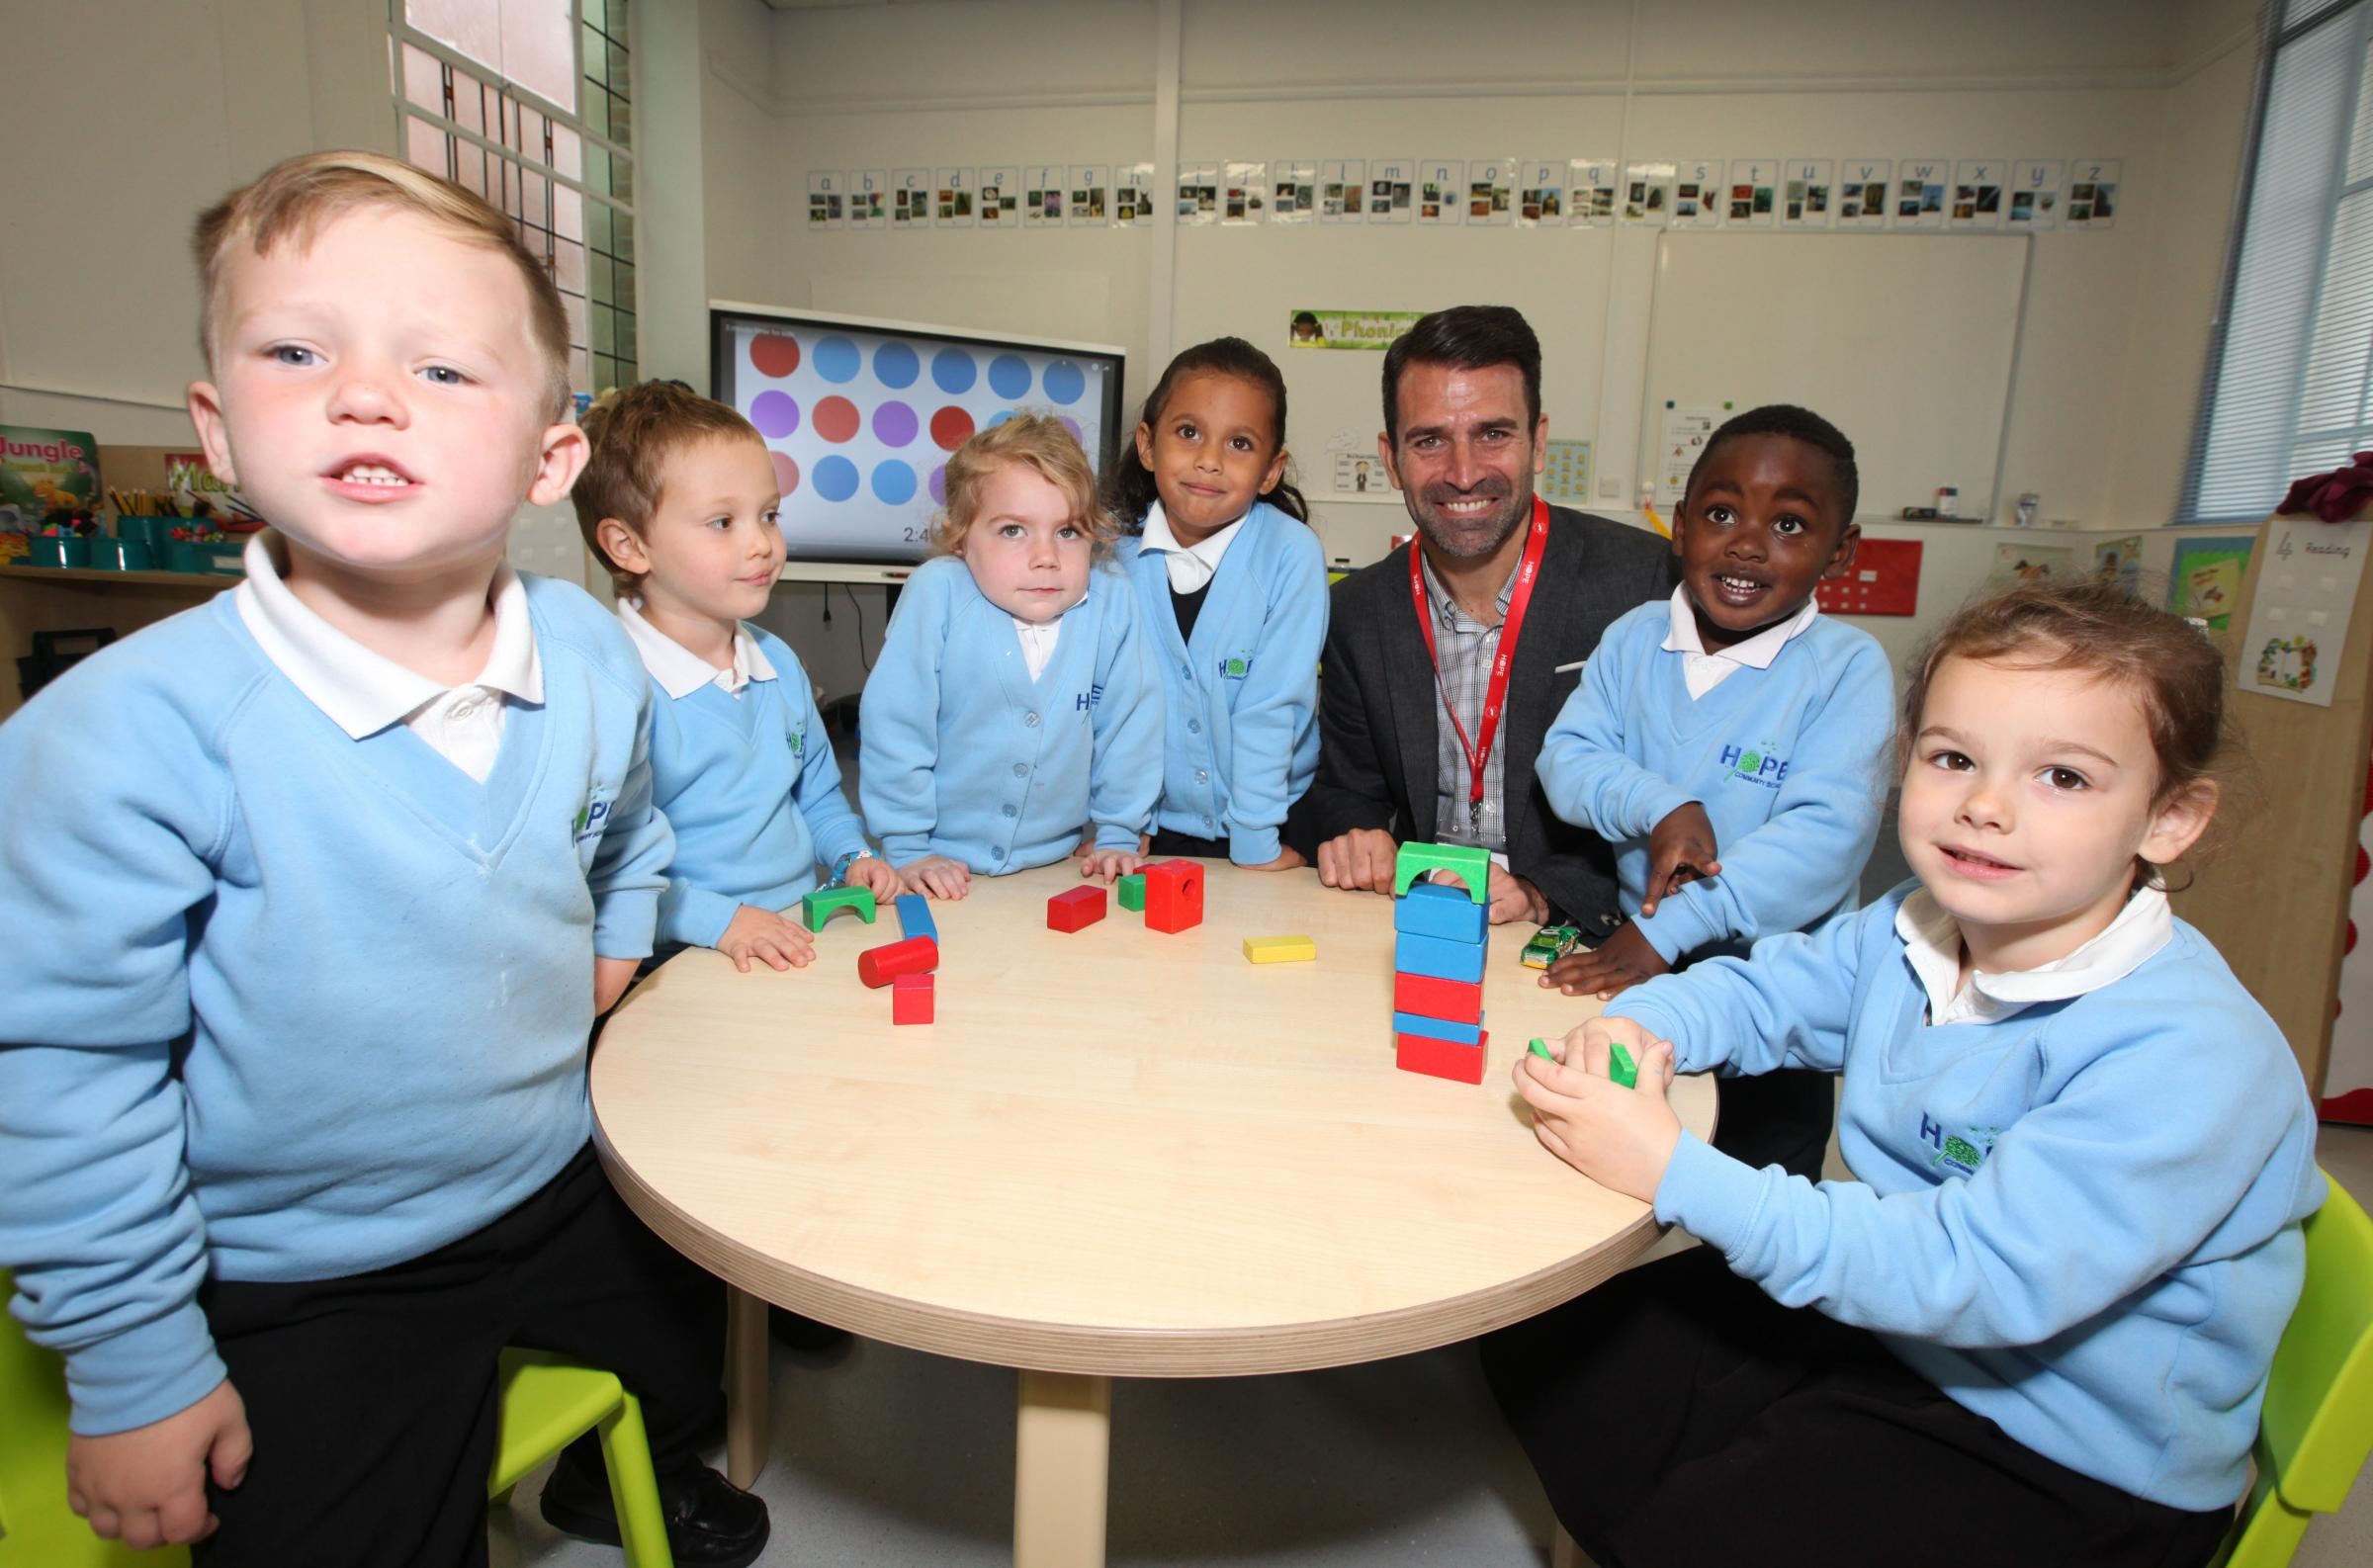 Photo Stuart Martin - Official opening of Hope Community School at Central Hall Southampton - Francis Benali pictured with some of the school's new pupils.